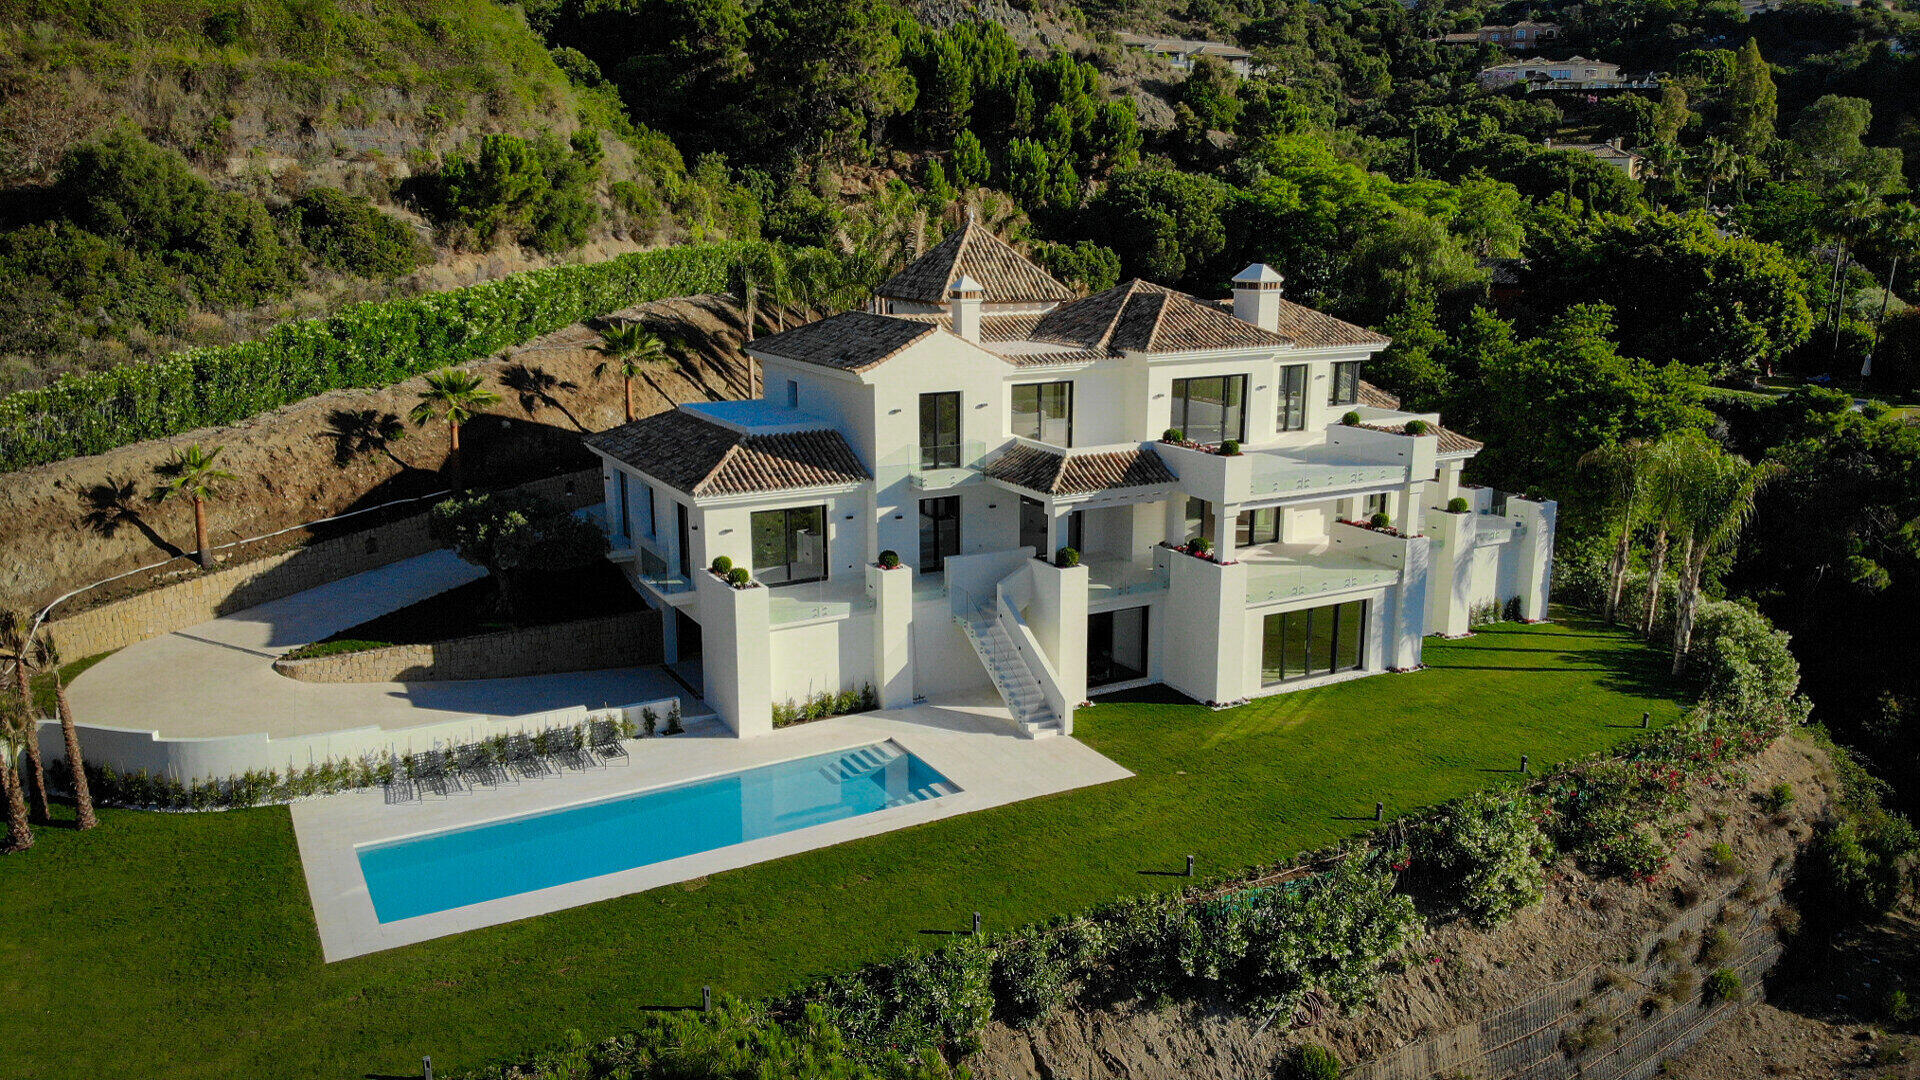 New build La Zagaleta villa modern with a sea view